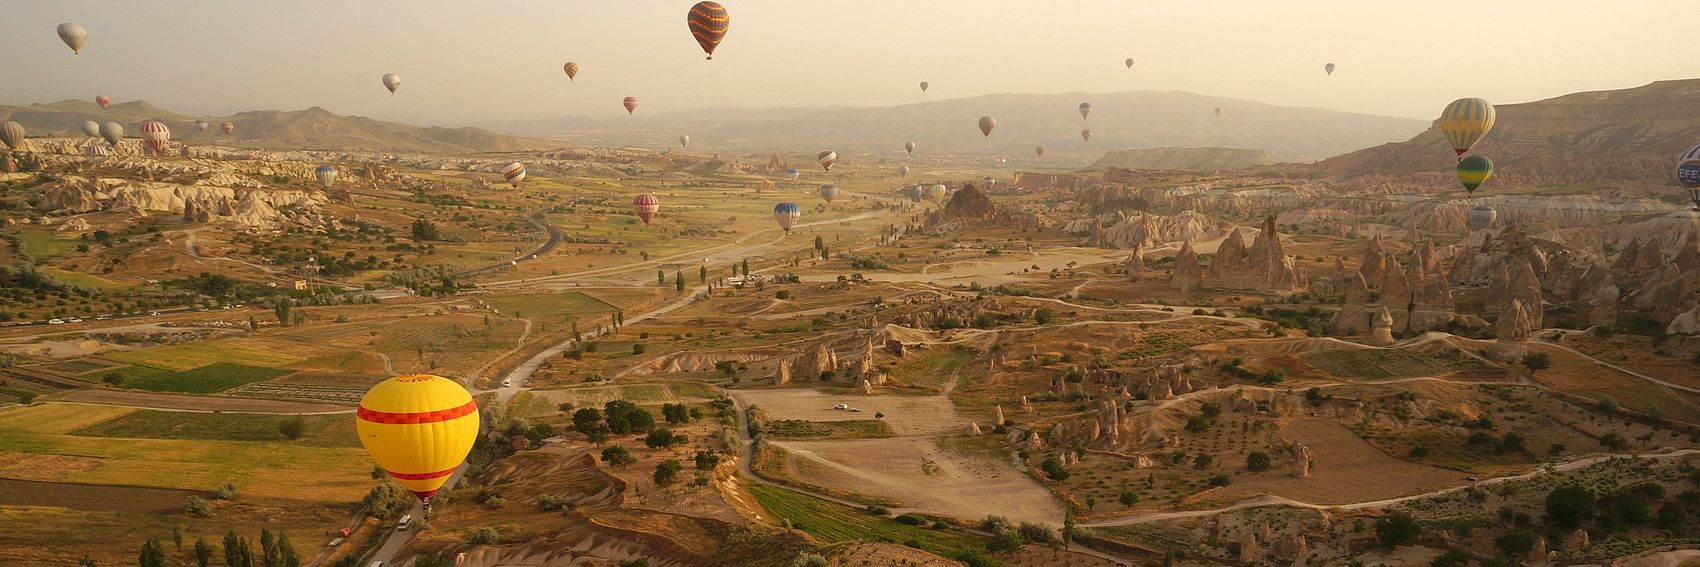 """Mongolfiere in Cappadocia"" - immagine originale di di Mr Hicks46, immagine derivata a cura di Lkcl it"